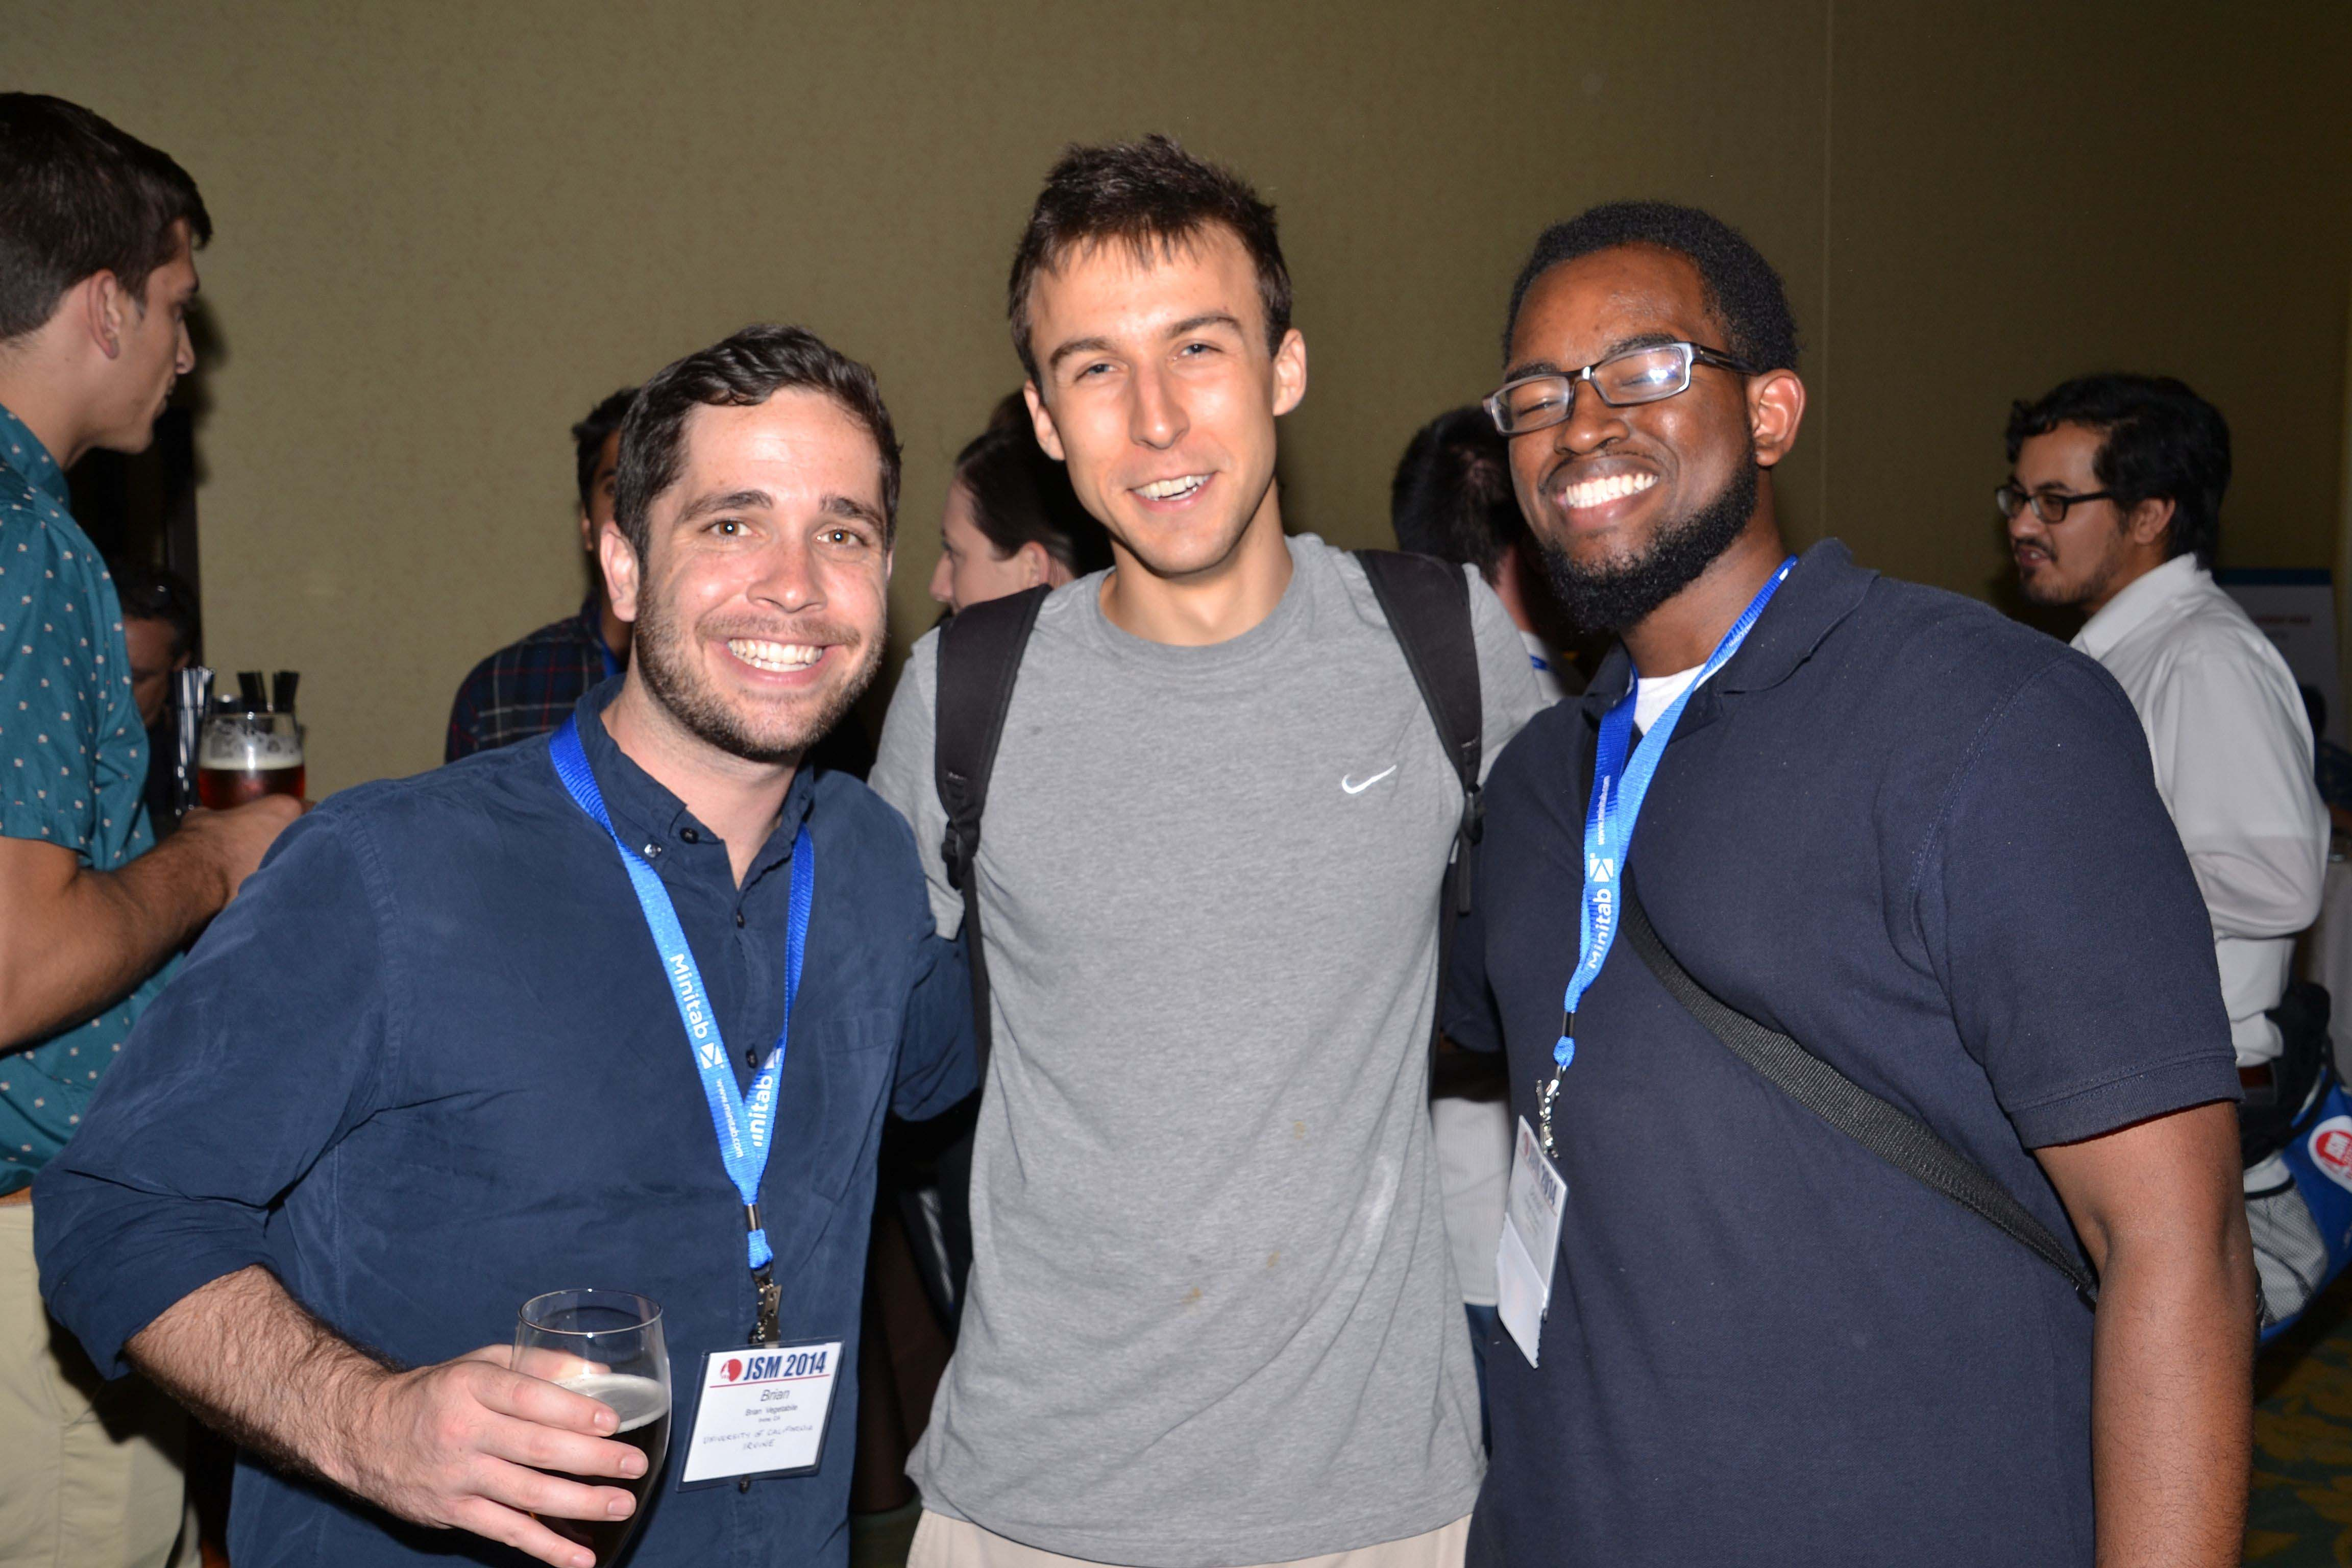 Brian Vegetabile, Ryan Scott Warnick,  and Donald Rogers II take part in the Student Mixer